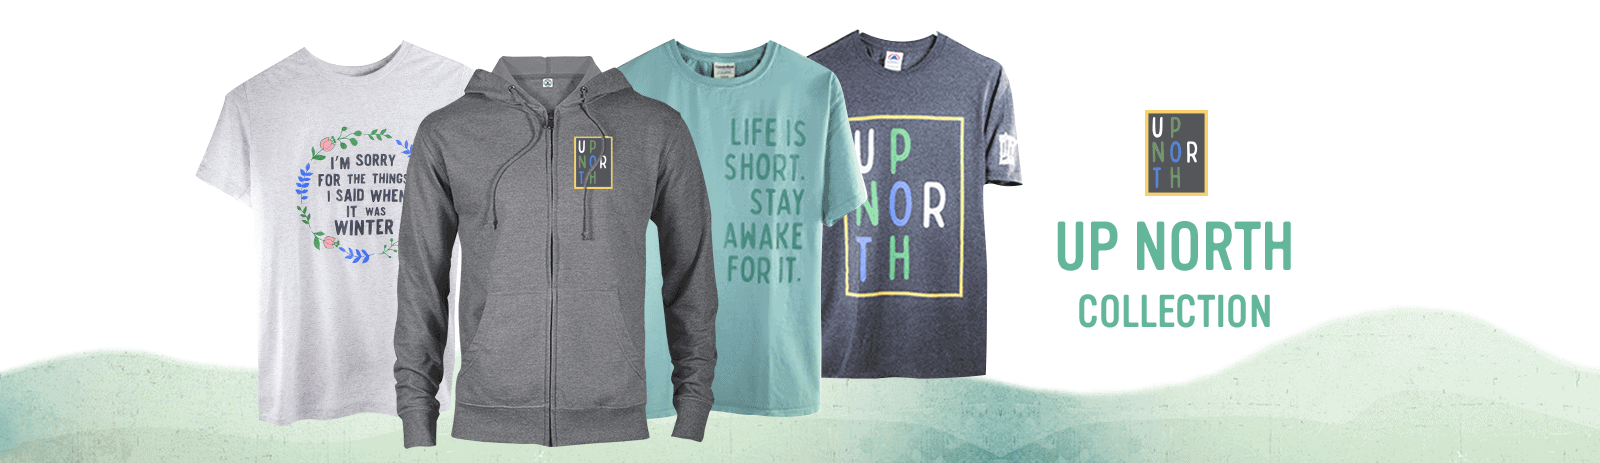 Up North Apparel